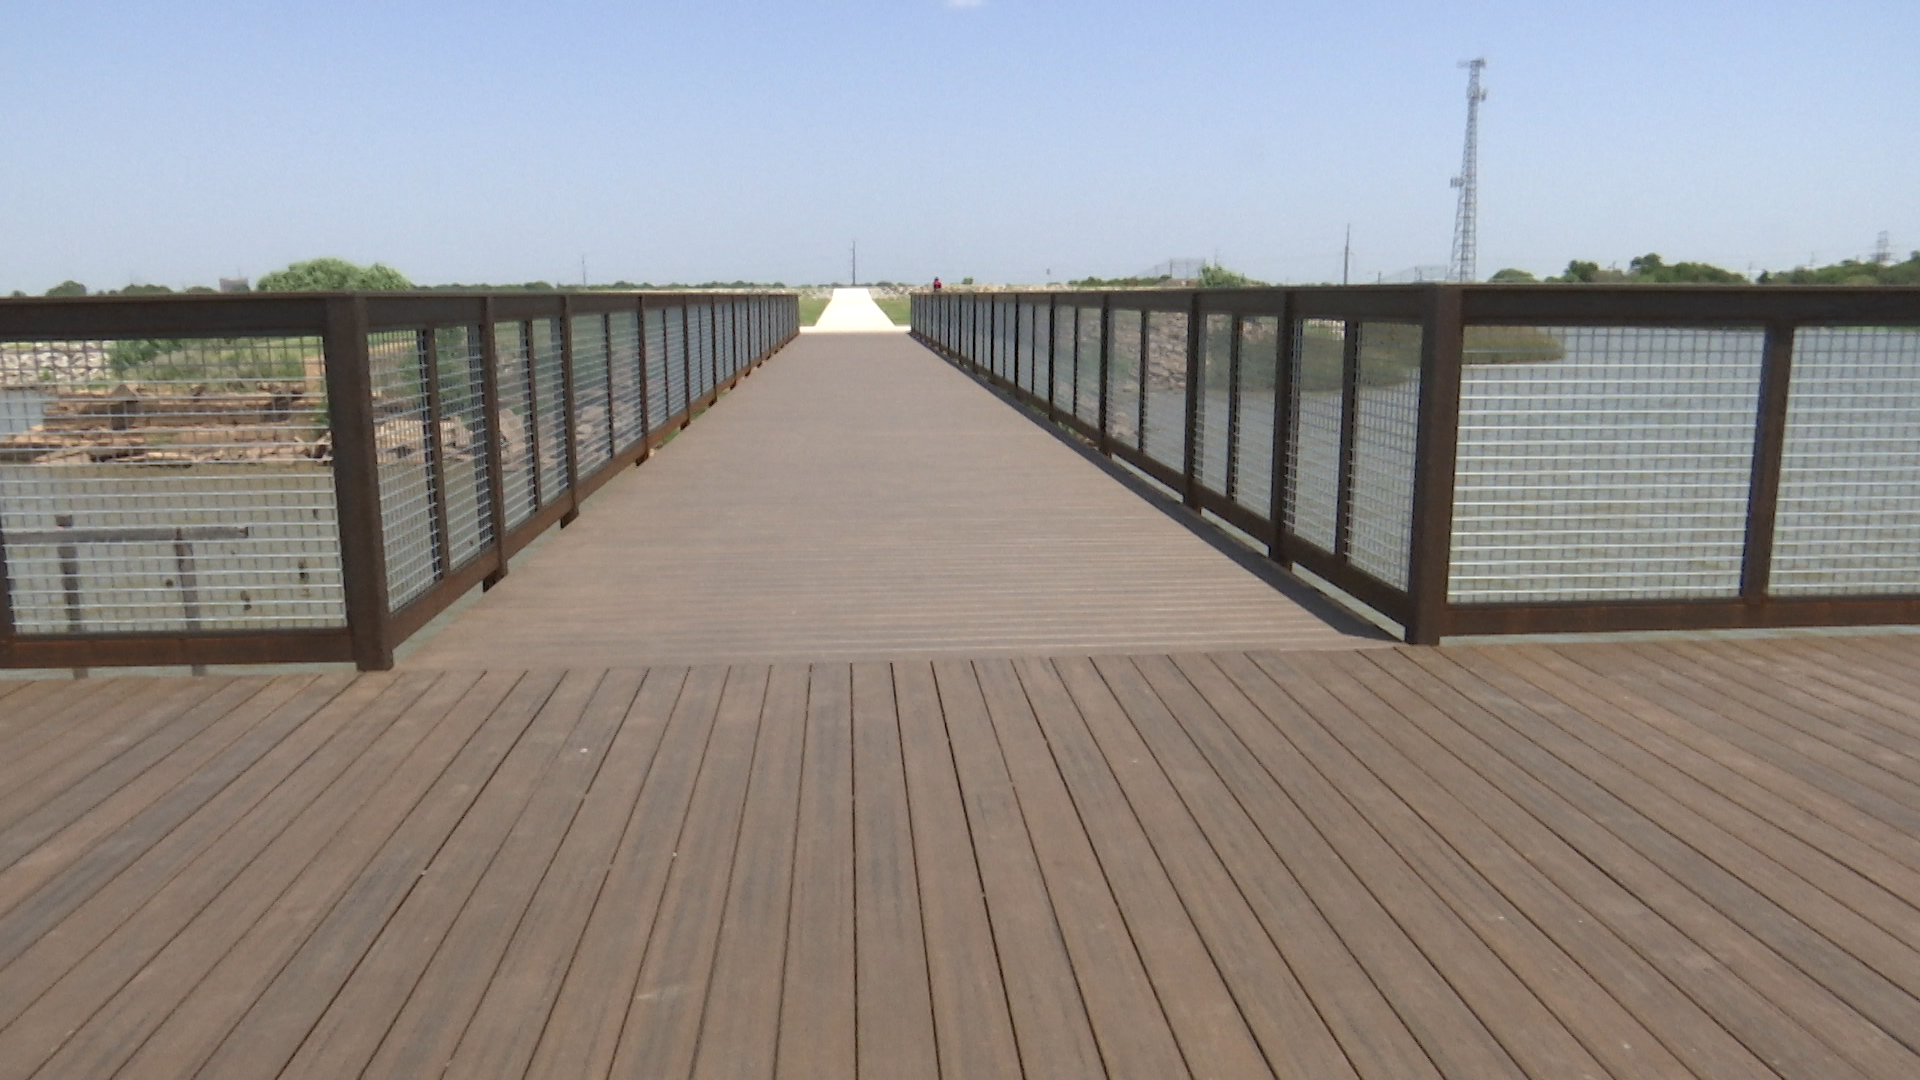 After six years of planning and executing the boardwalk at Lake Wichita is complete and makes its official debut Friday.